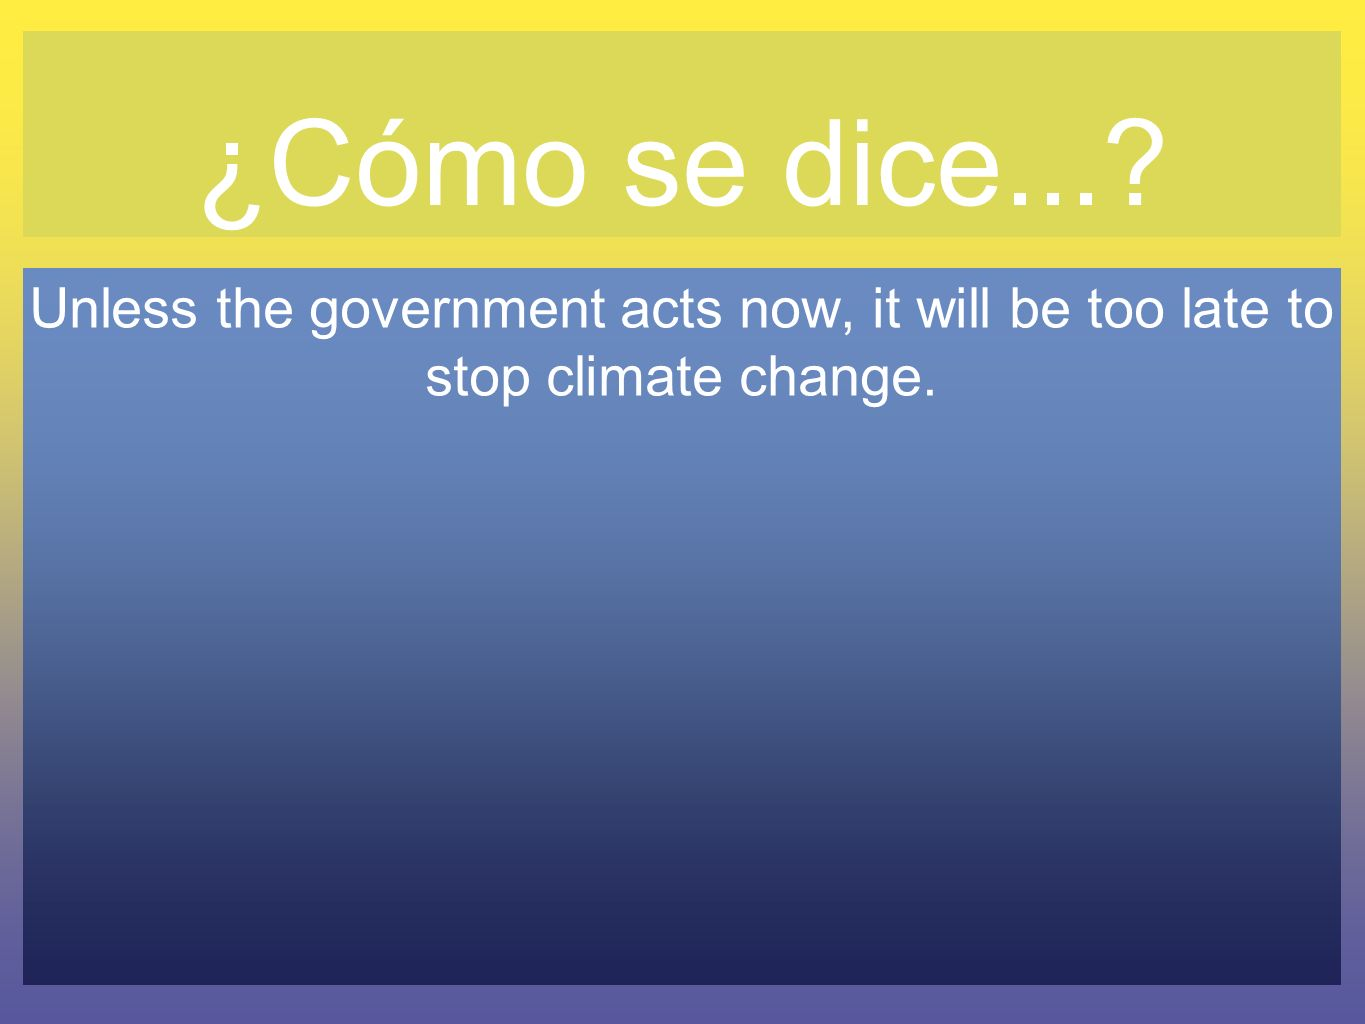 ¿Cómo se dice... Unless the government acts now, it will be too late to stop climate change.